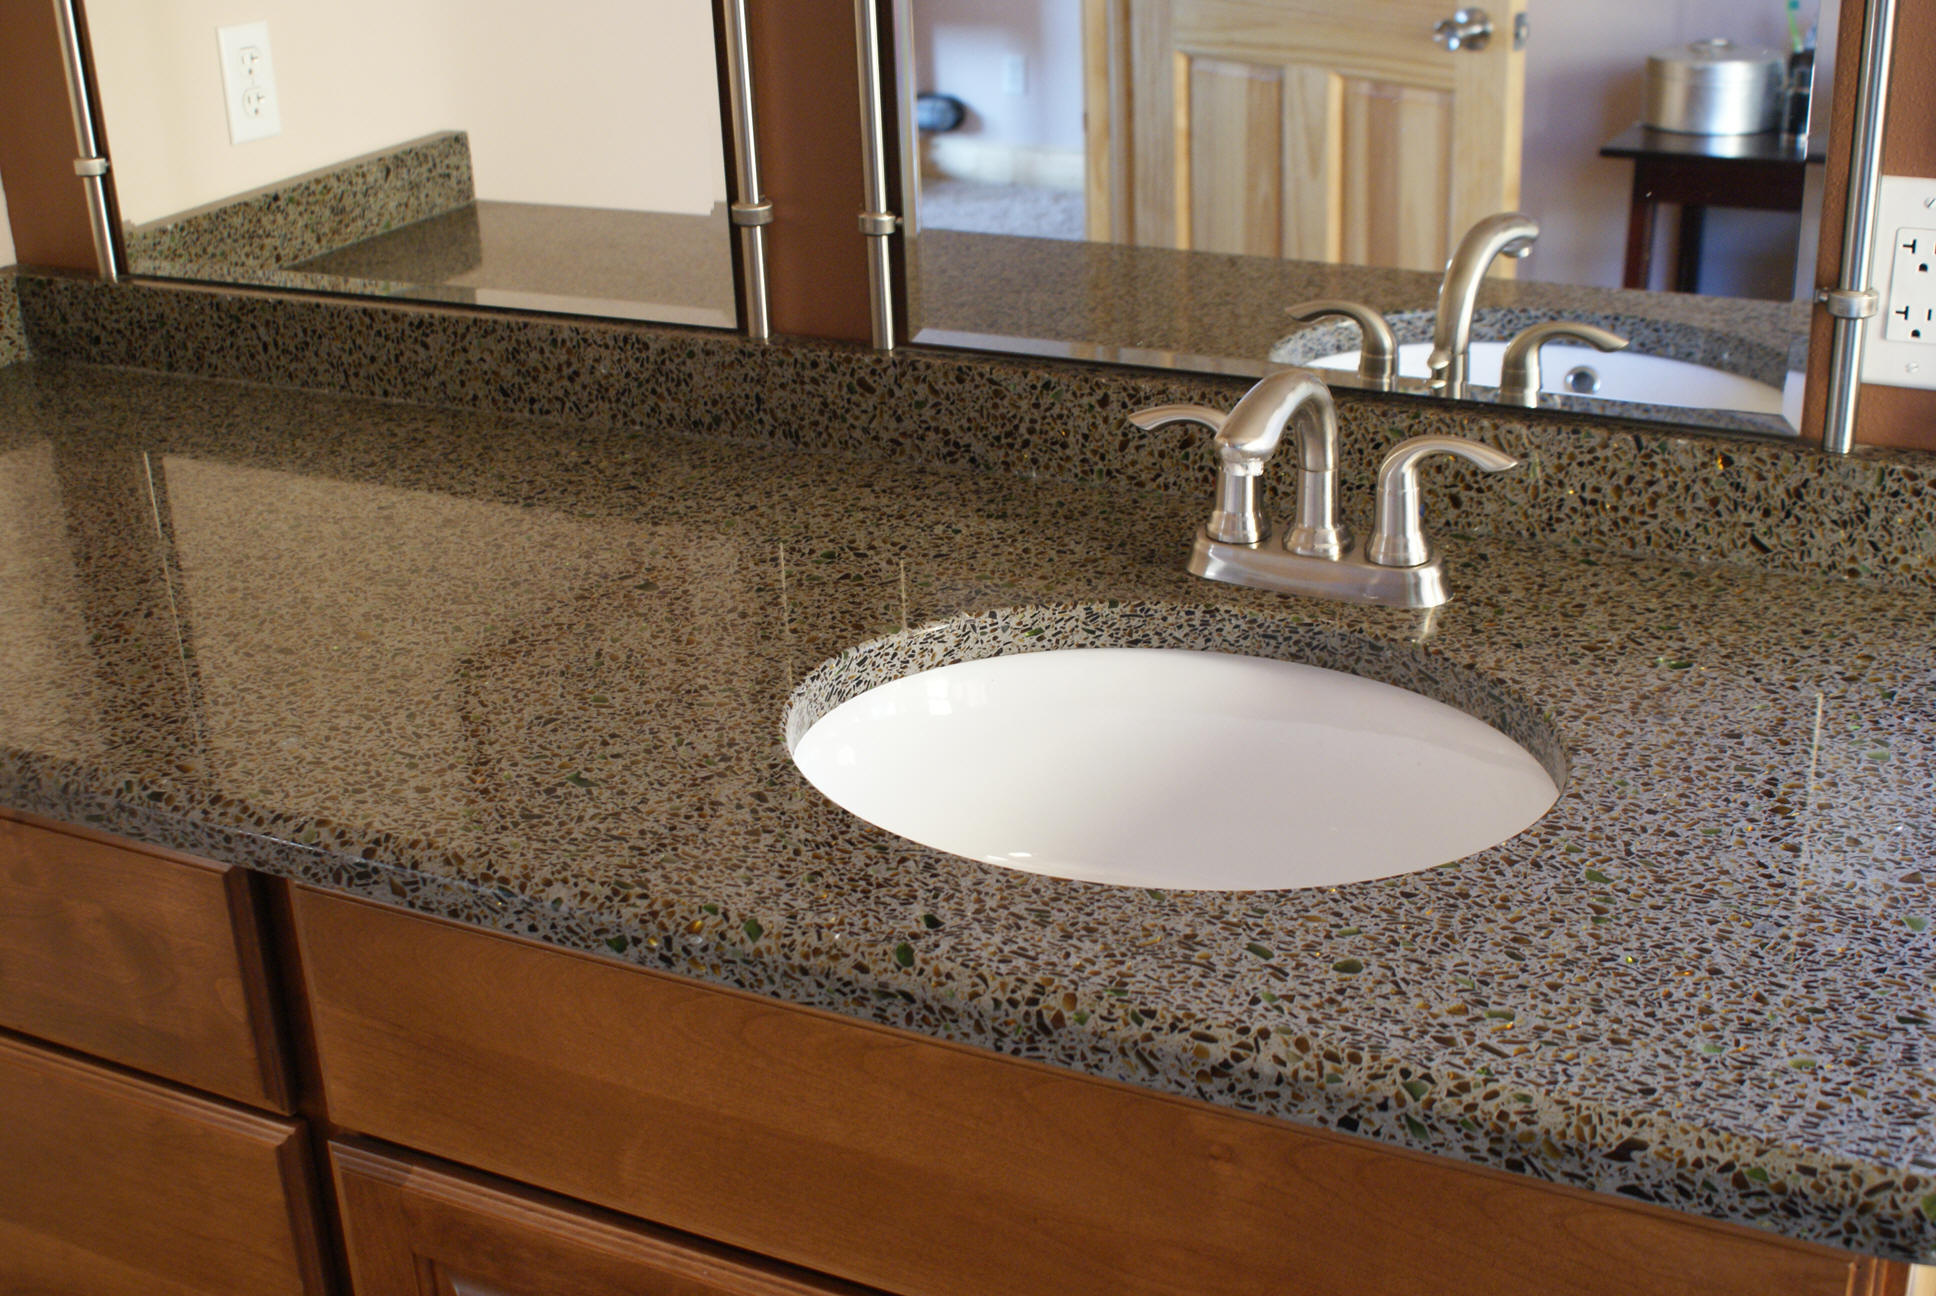 Countertops : ... COUNTERTOPS PRODUCES ELEGANT, DURABLE, & ECO FRIENDLY COUNTERTOPS